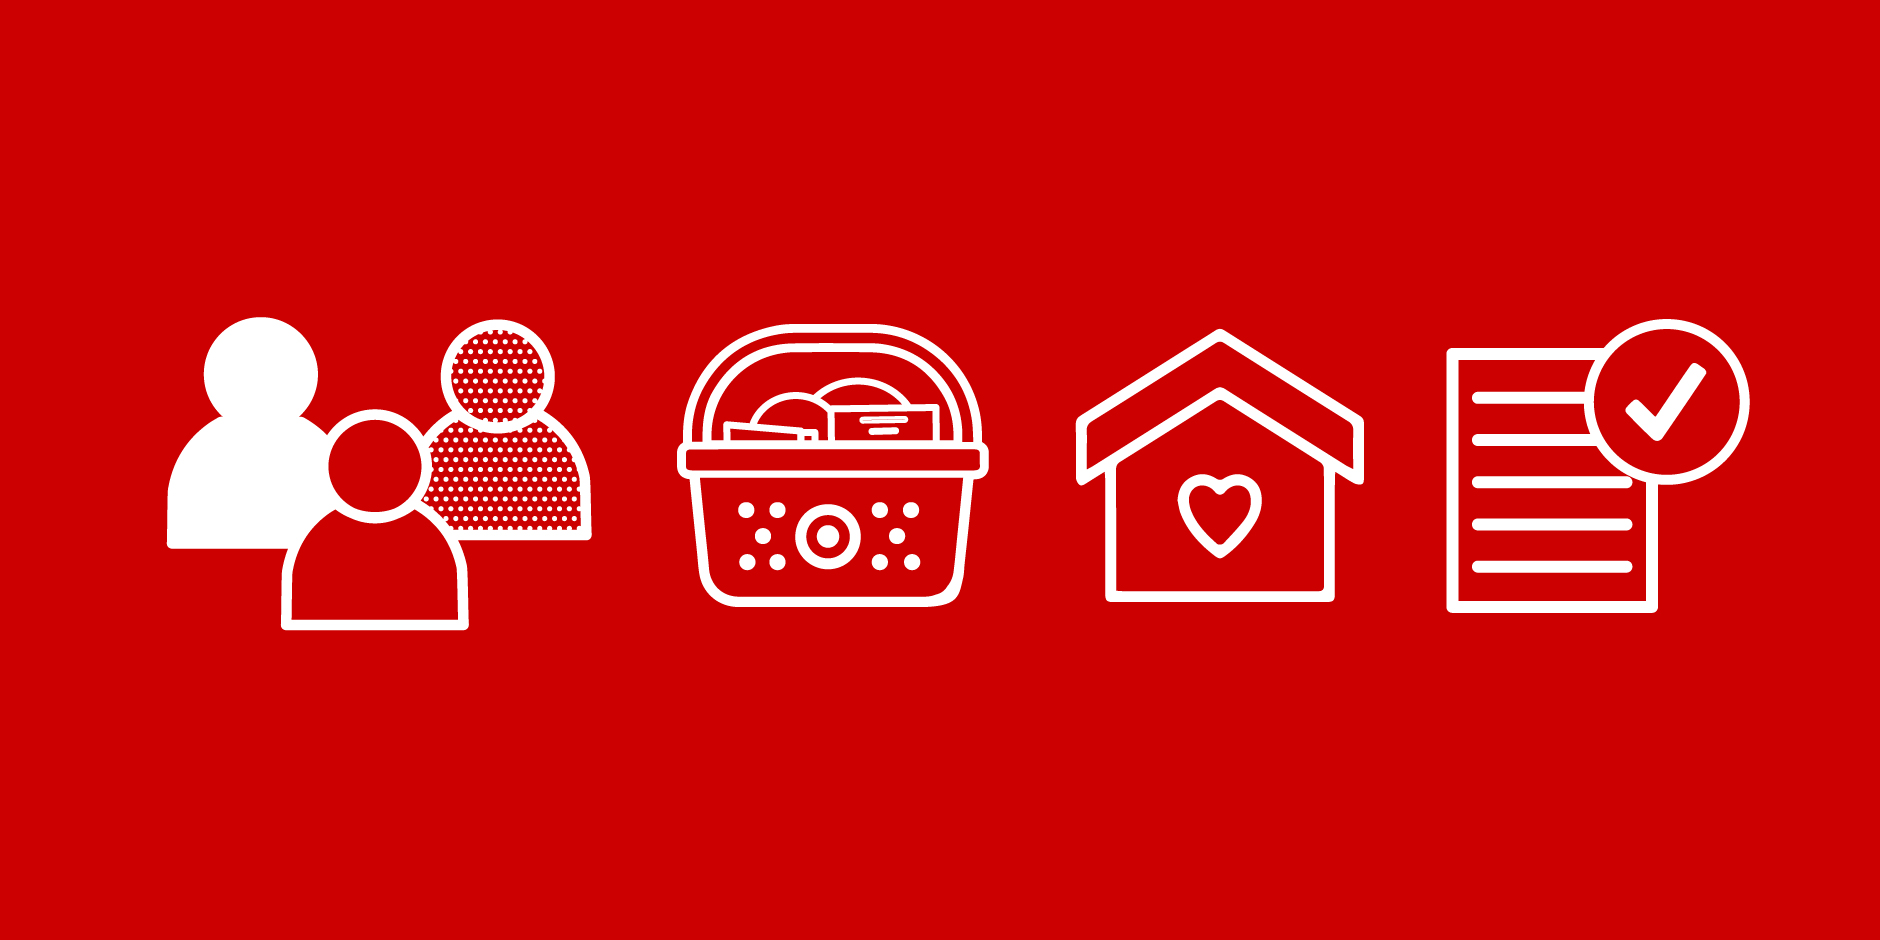 Icons against a red background of 3 team members, a Target basket, a house and a page and checkmark.